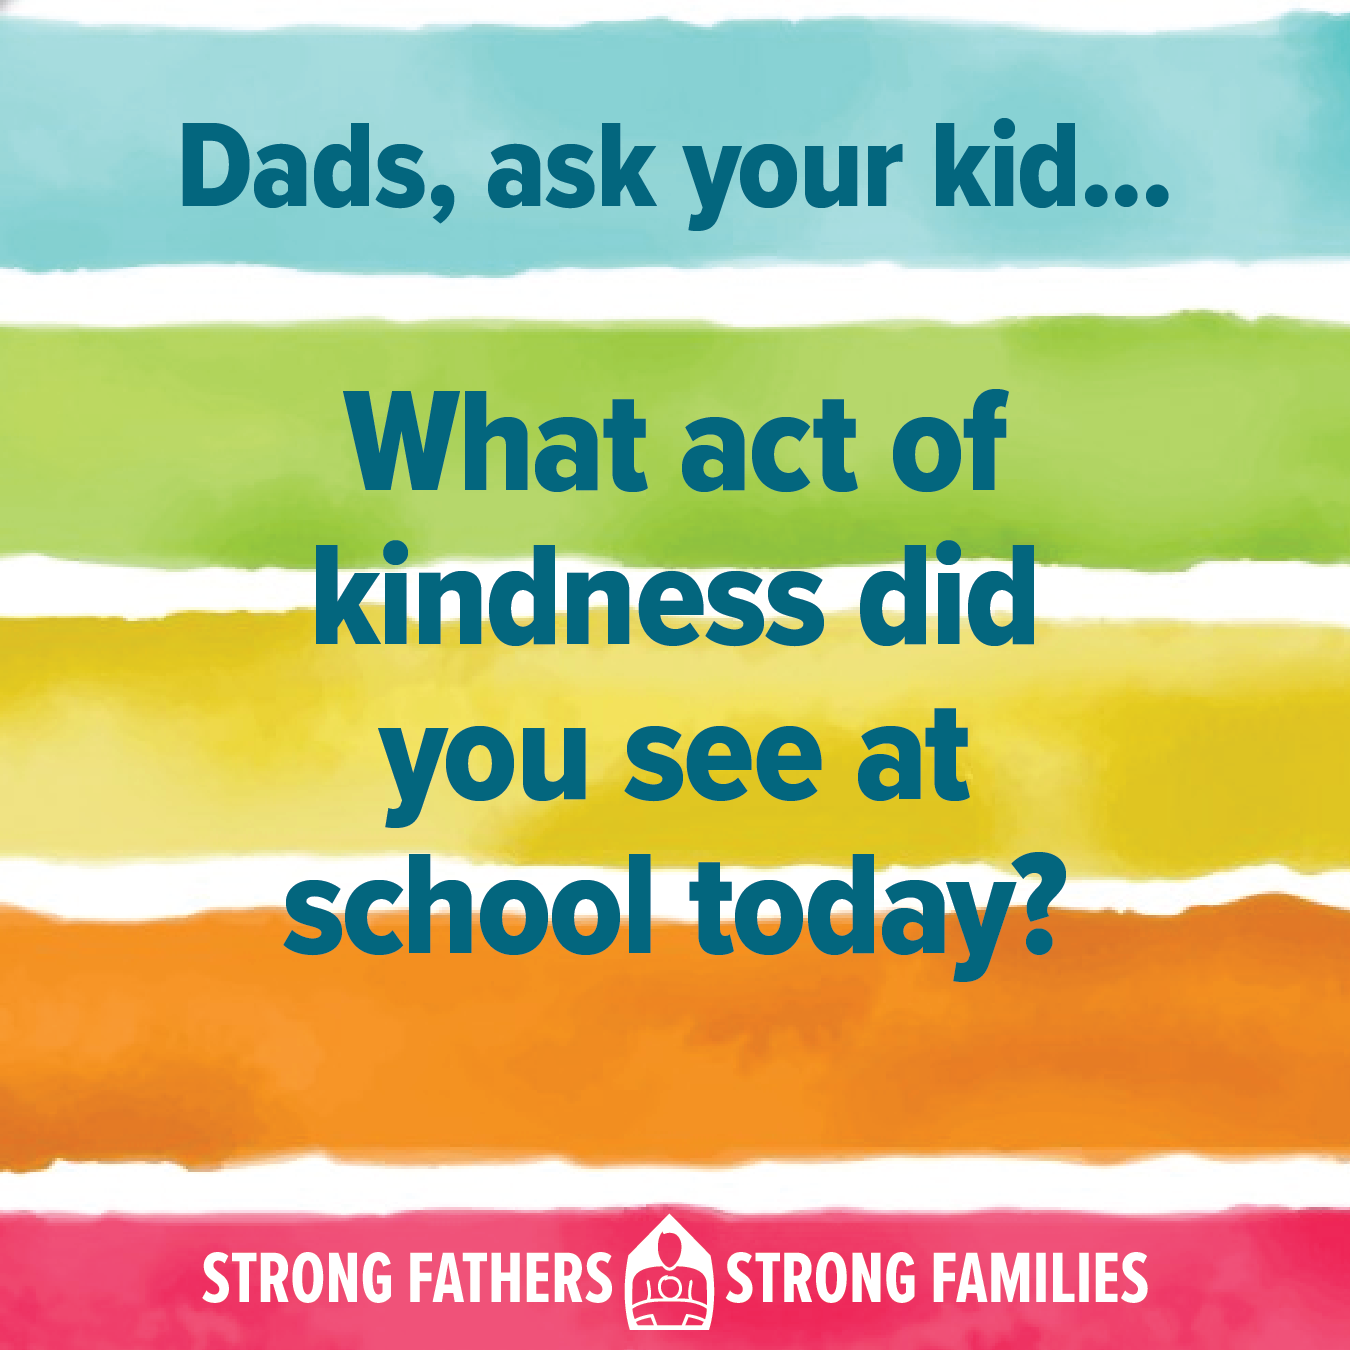 What act of kindness did you see at school today?